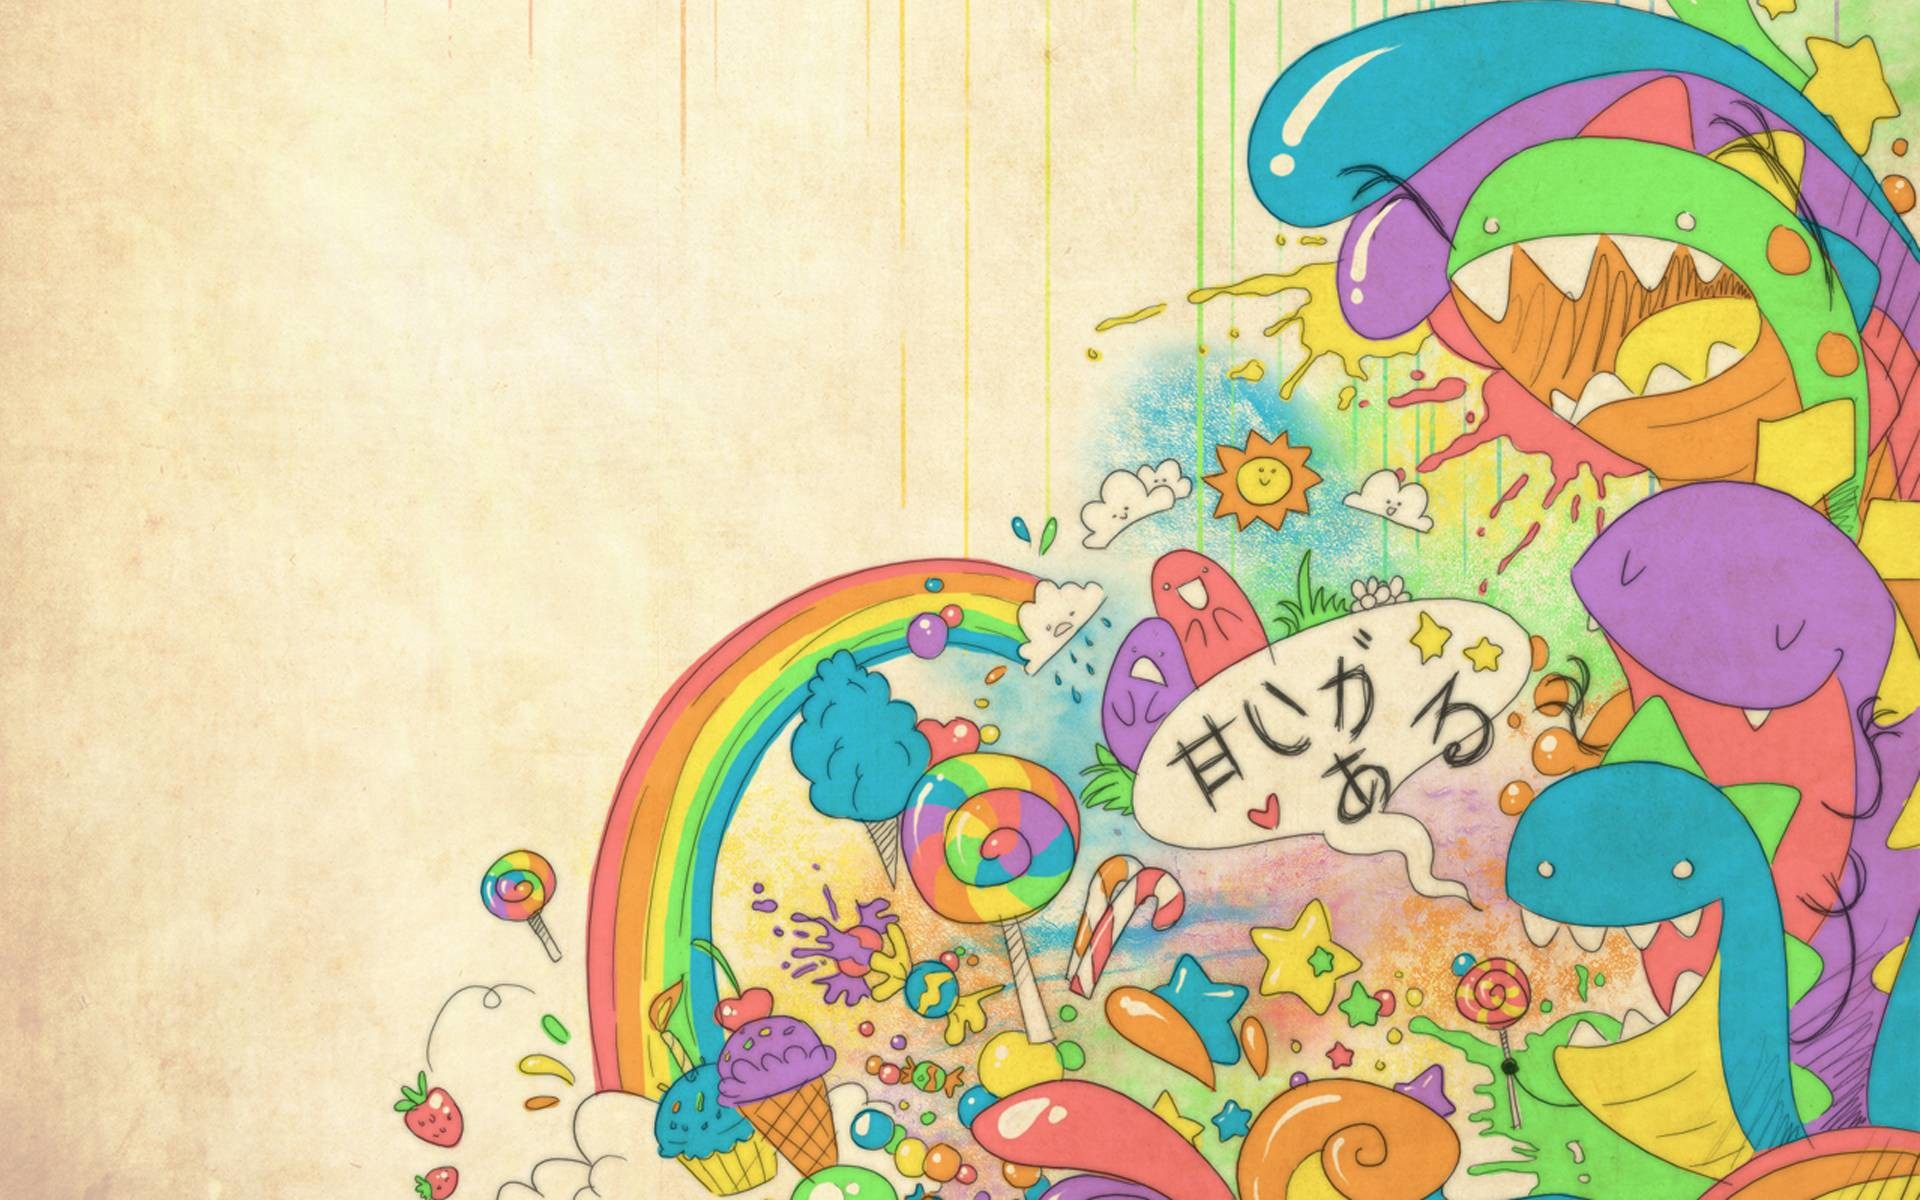 Candy Wallpaper High Quality Candy Wallpapers Full HD Candy